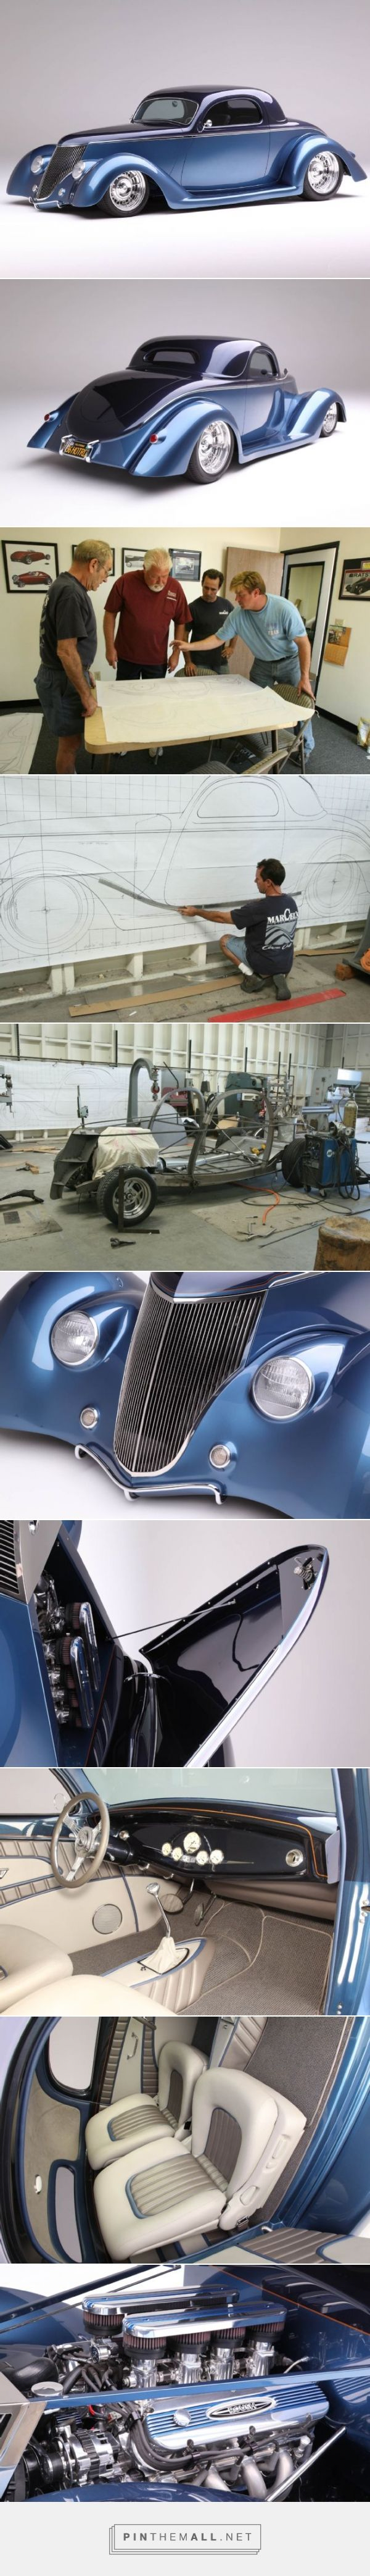 """1936 Ford Coupe is Chip Foose Designed and Handformed in Metal by Marcel del Lay """"The engine in this ride is as impressive as the rest of the car, and it came from Roush Performance. One of their 427IR crate motors, the V-8 produces over 550 hp on the dyno. Mated to an Art Carr–prepped 4R70W four-speed automatic transmission (selected with a Lokar shifter), the powerplant will have more than enough power to quickly launch Bob Sr. anywhere he might want to go. That's in part to the…"""